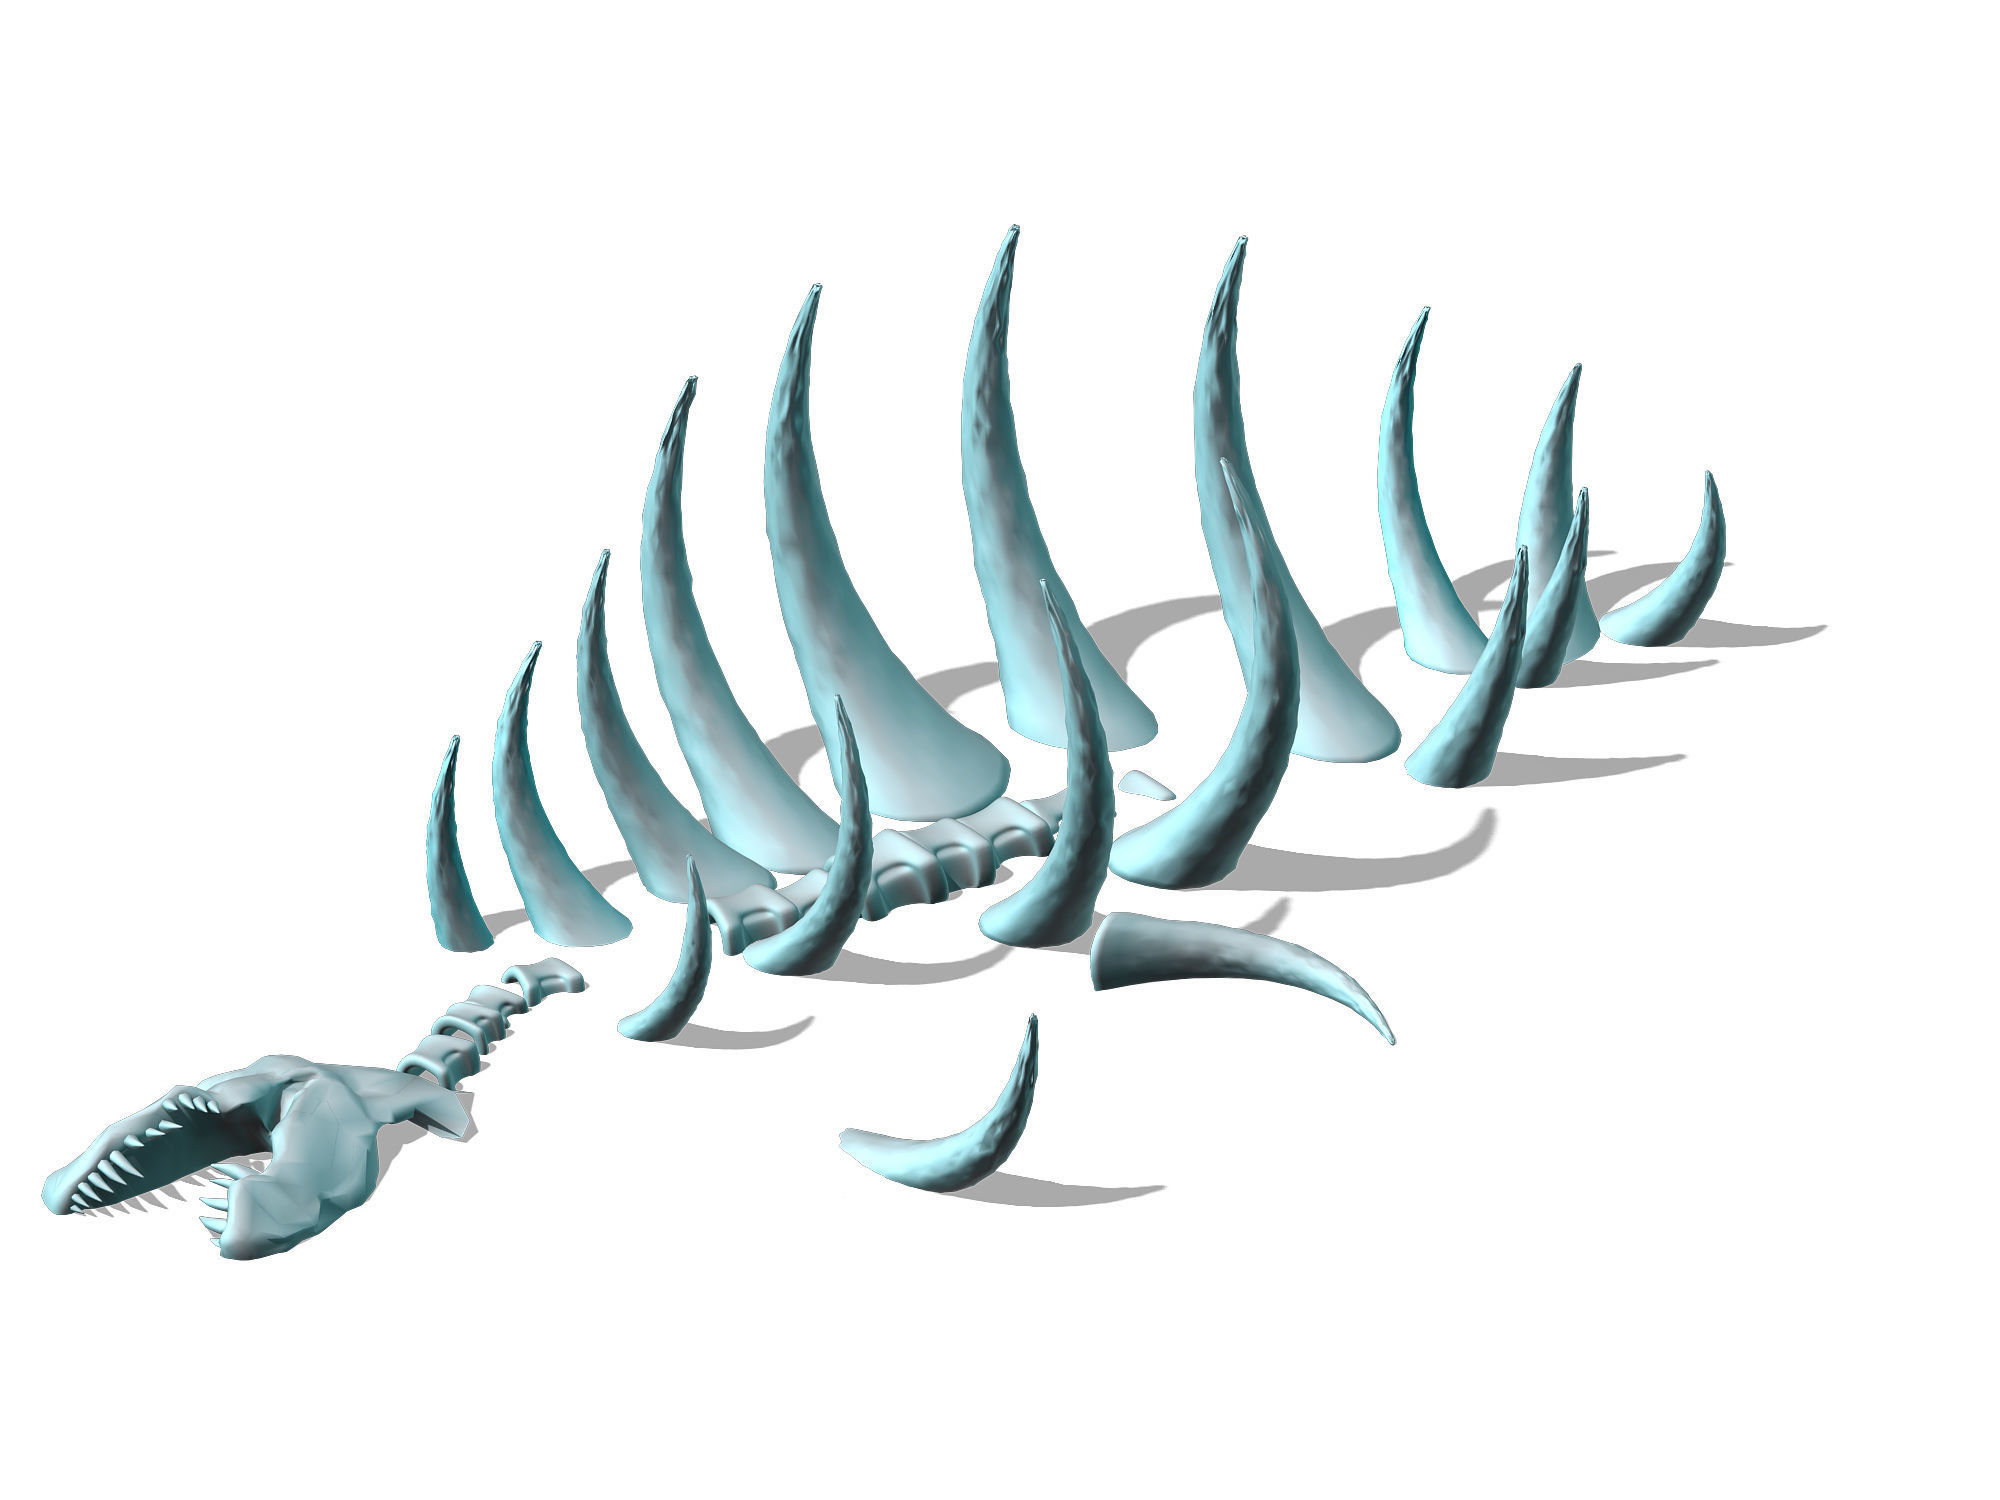 Seabed animal fossil 02